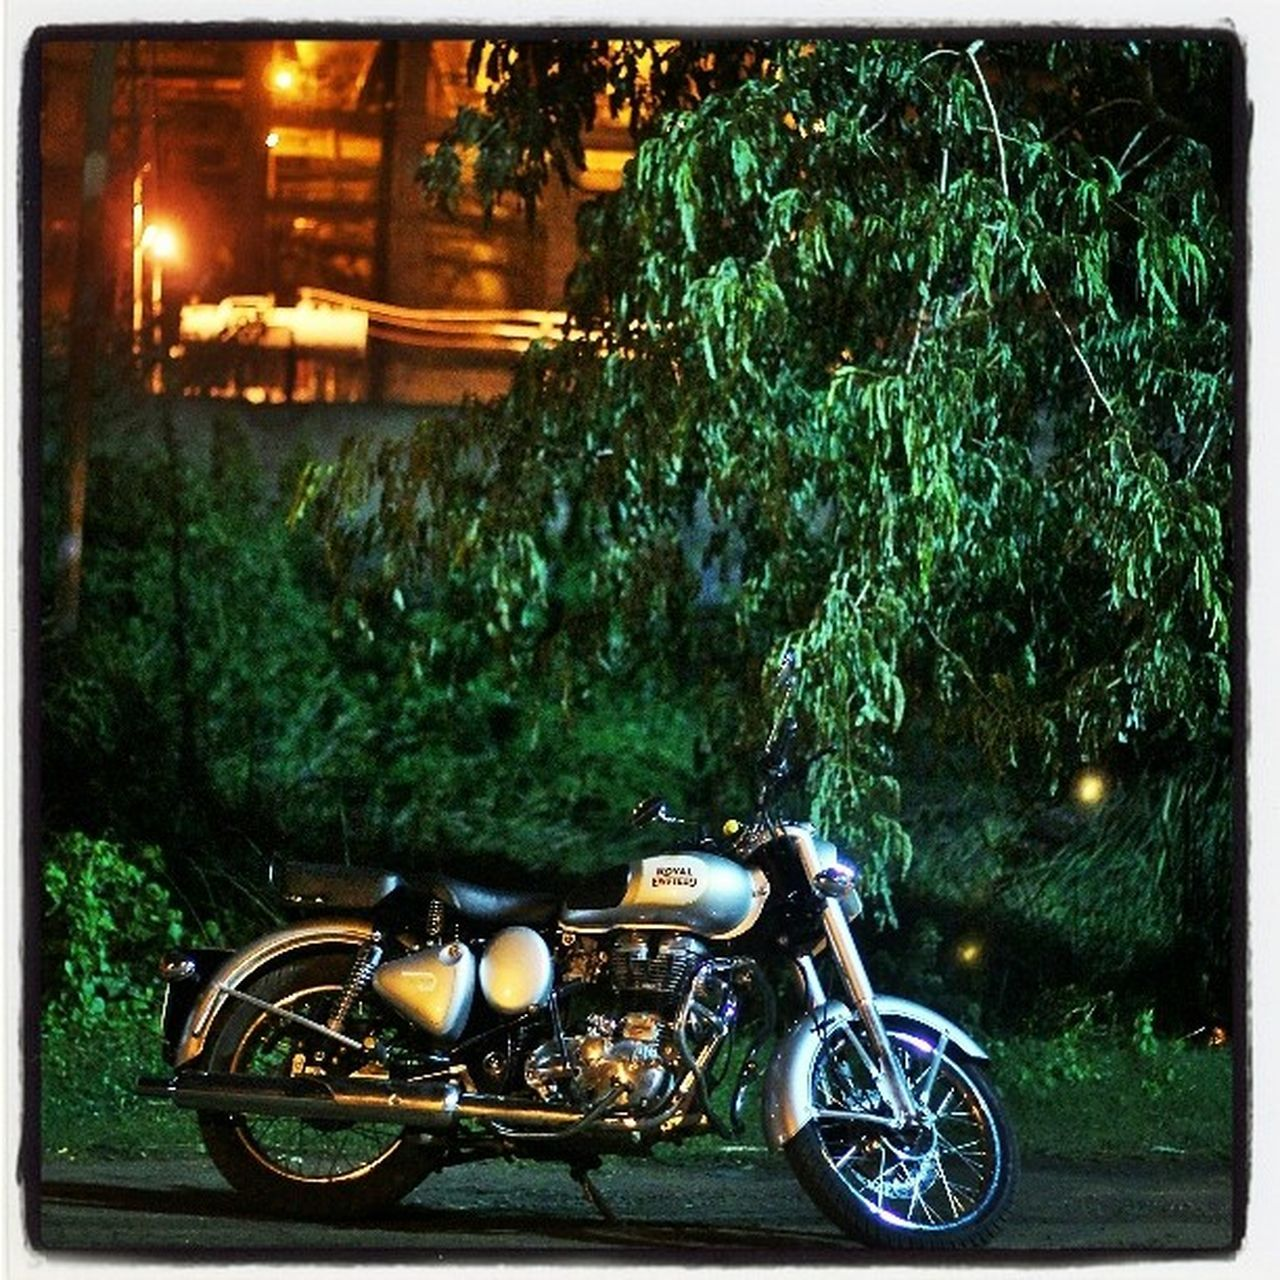 Re Royalenfield Classic 350cc Sliver Official_canon 50mm Voscam Factory